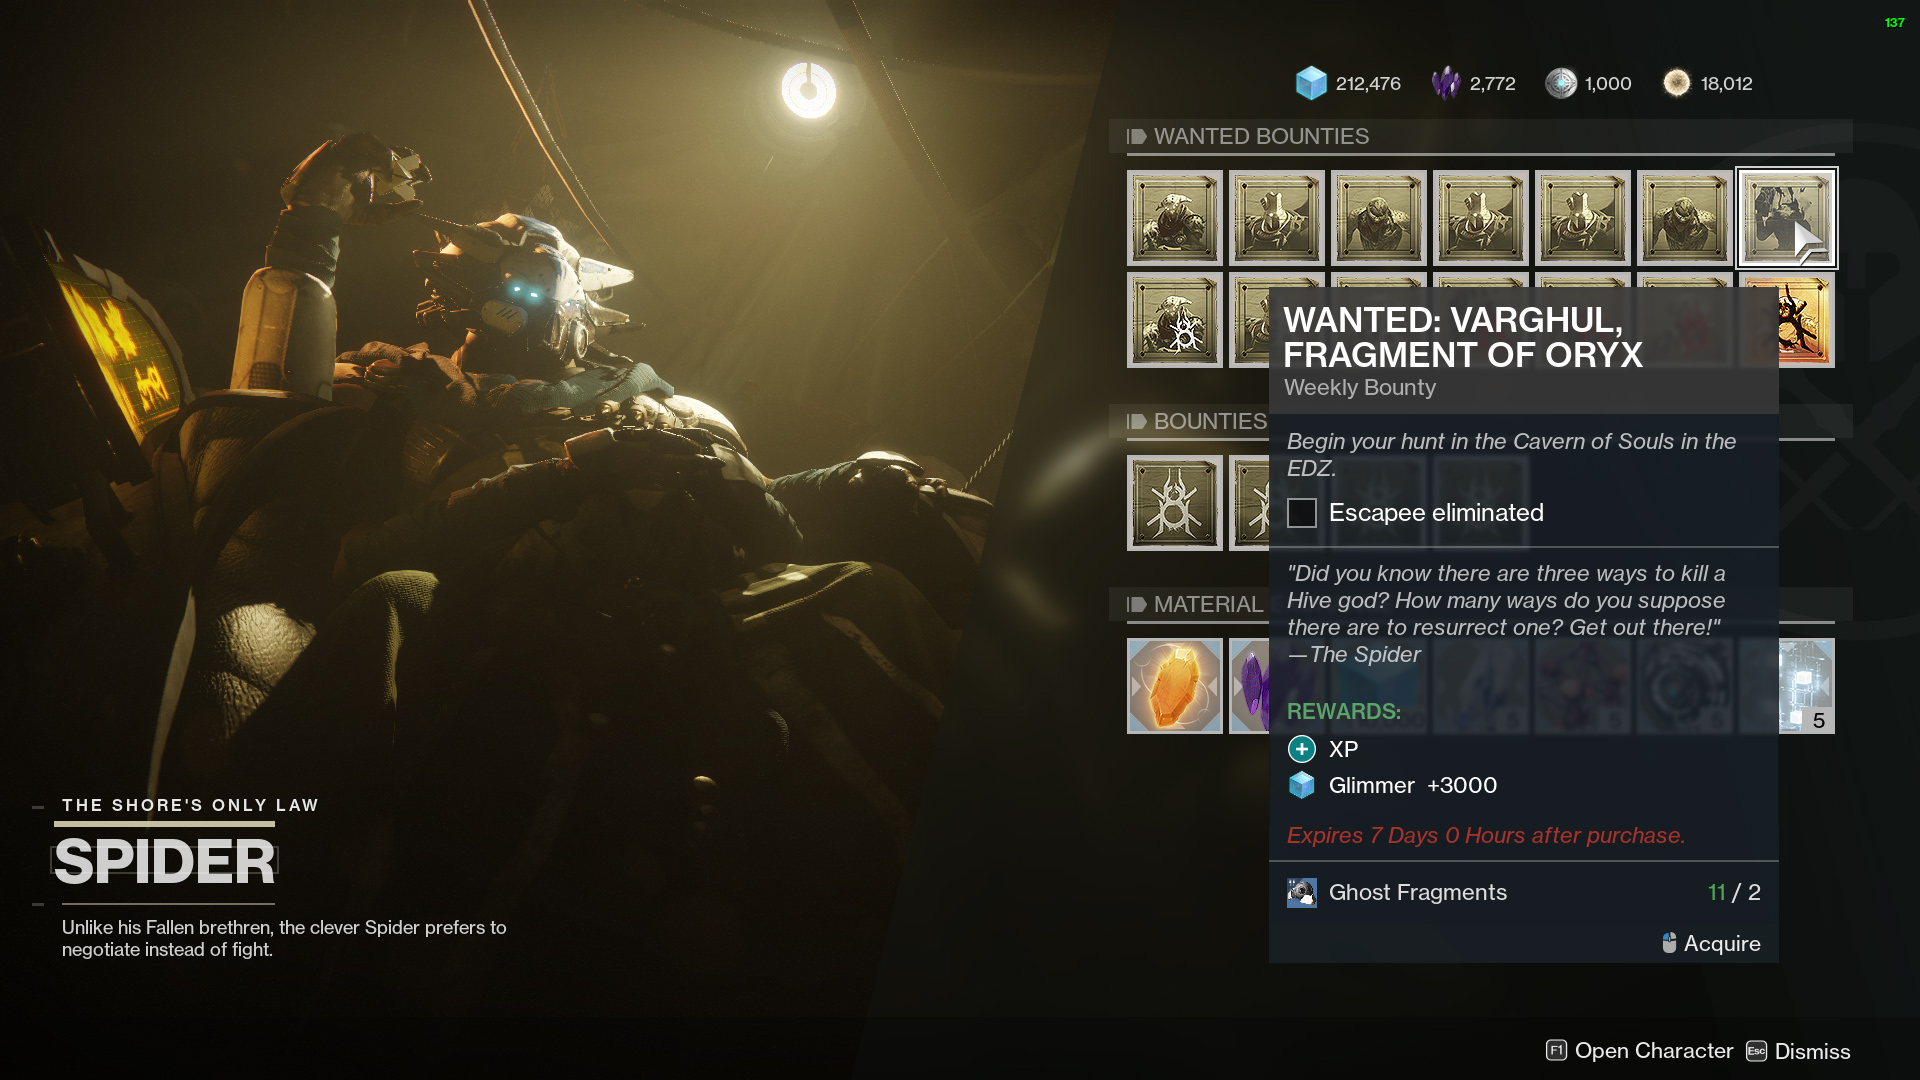 destiny 2 spider wanted varghul fragment of oryx